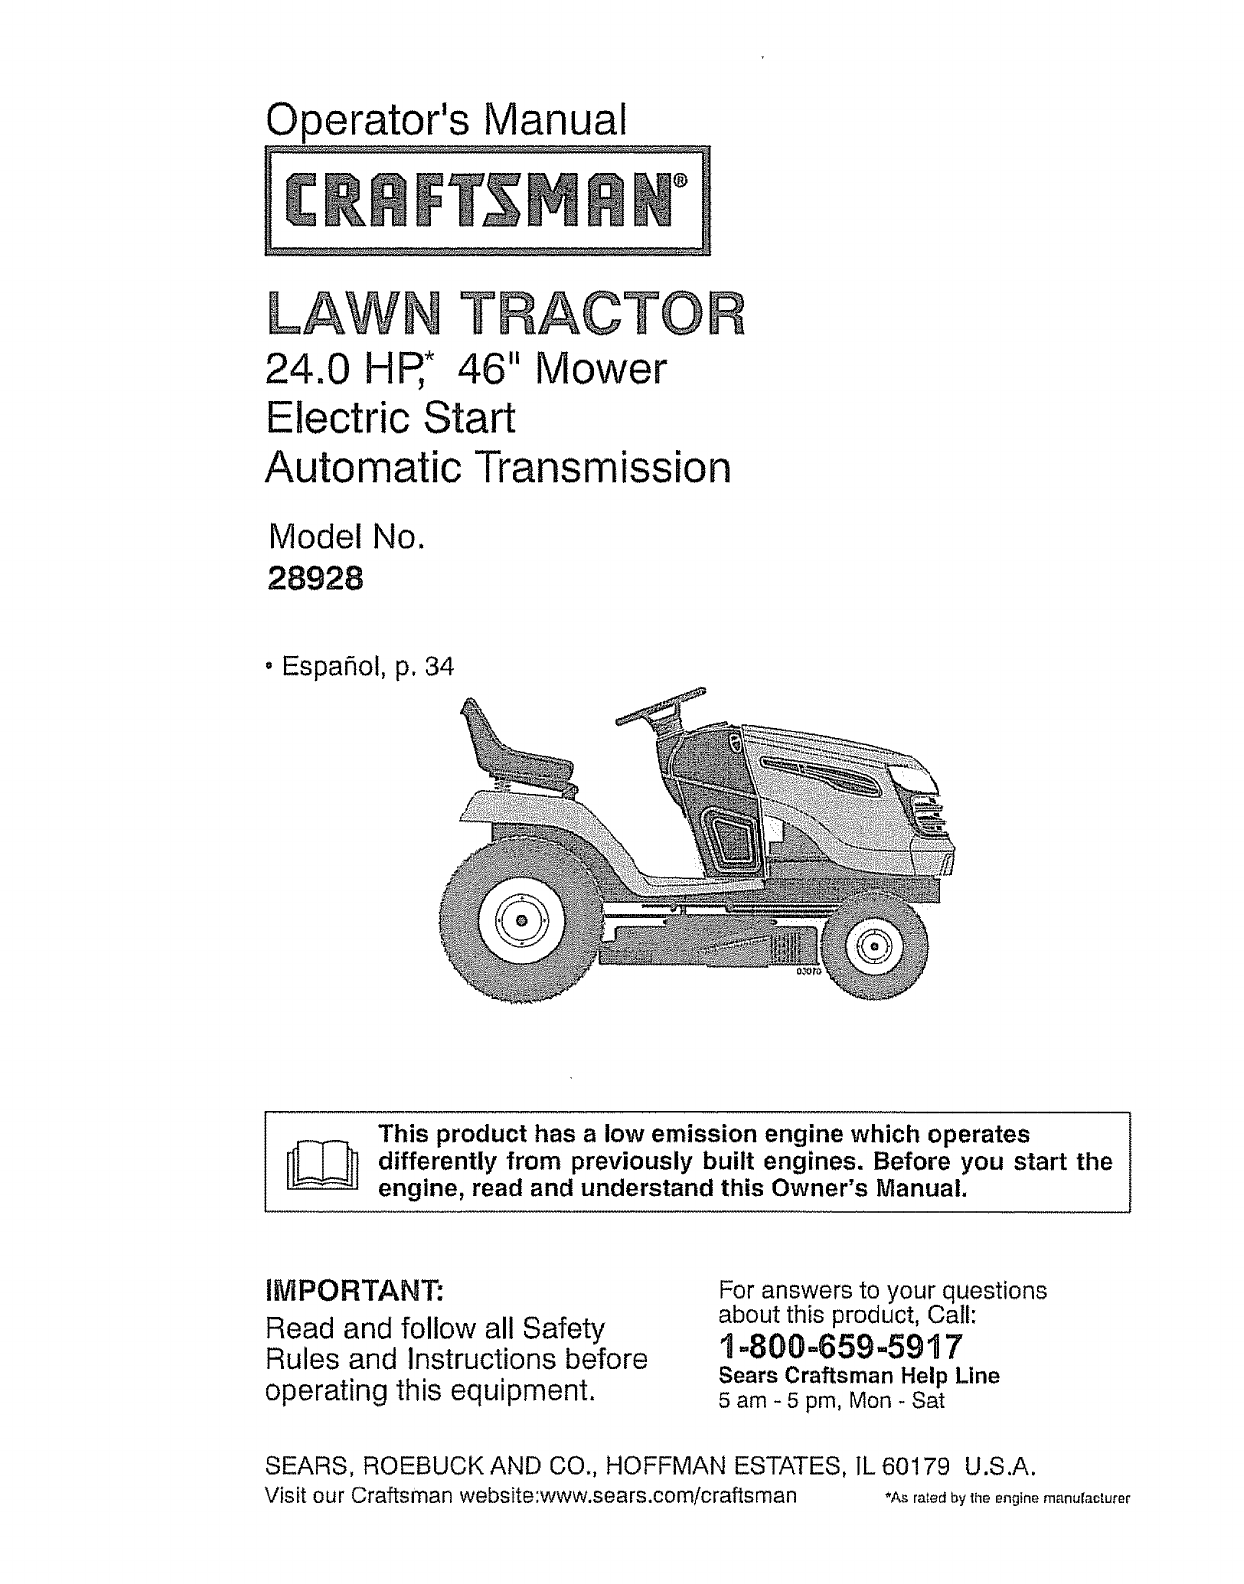 d7b128ba 72e6 4a04 bfbc dc9ac6e656b1 bg1 craftsman lawn mower 917 289280 user guide manualsonline com Craftsman YTS 4000 Manual at gsmx.co